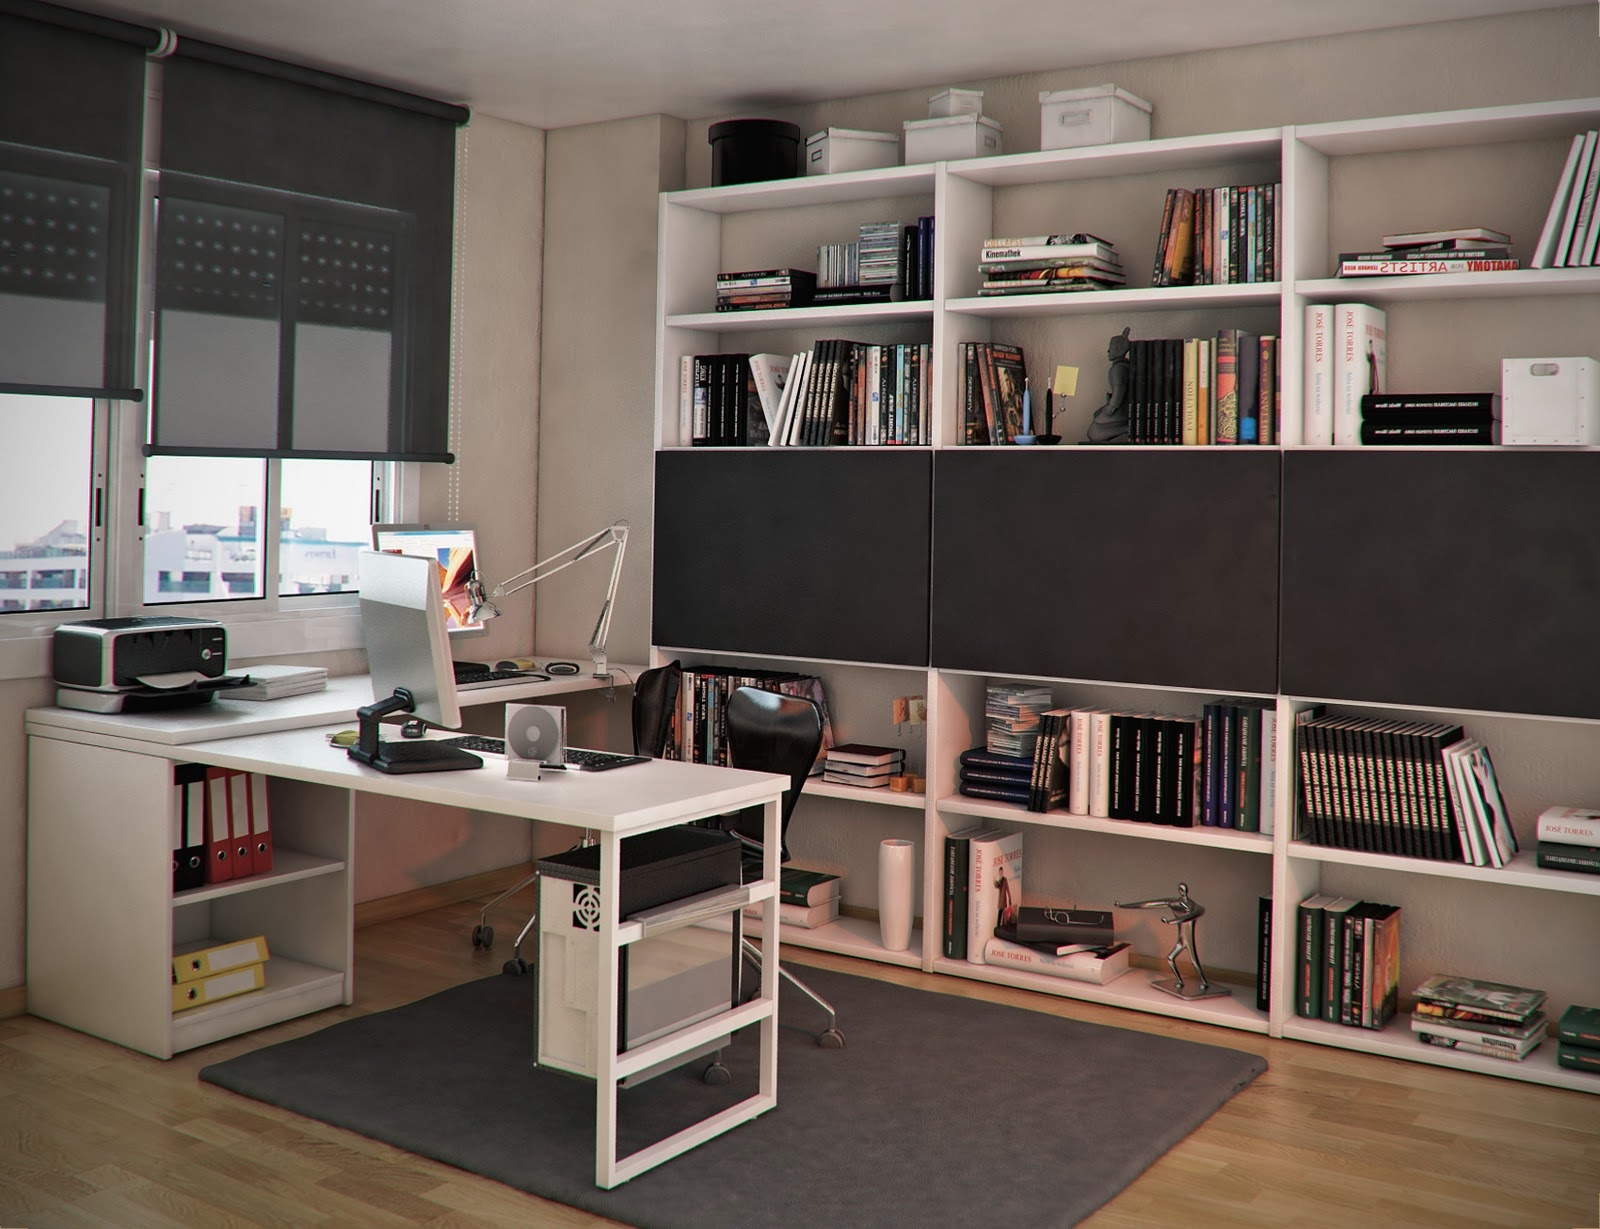 home study design ideas edepremcom home study design ideas - Home Study Design Ideas